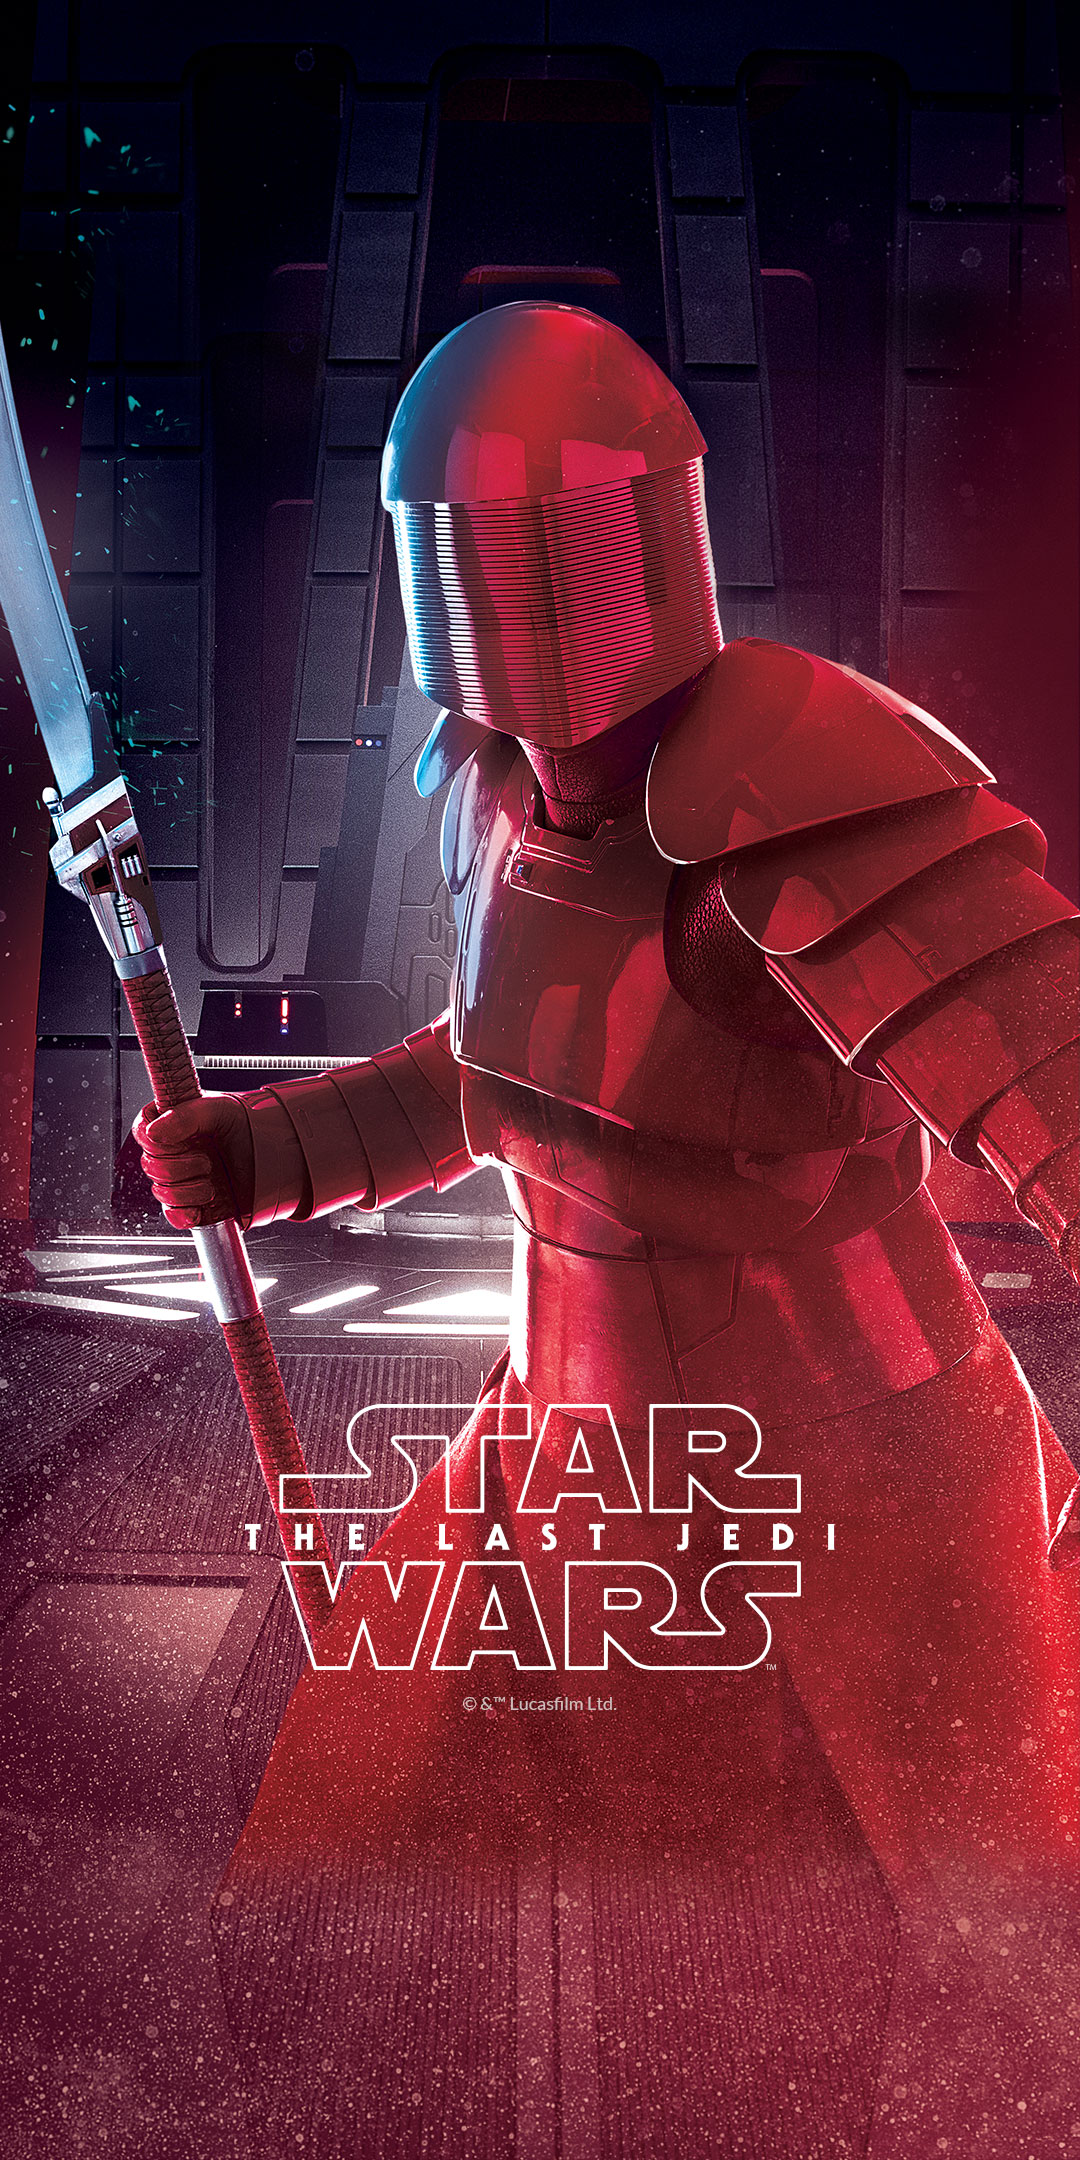 Get All The Star Wars The Last Jedi Wallpapers From The Special Edition Oneplus 5t Download Star Wars Wallpaper Star Wars Trooper Star Wars Art